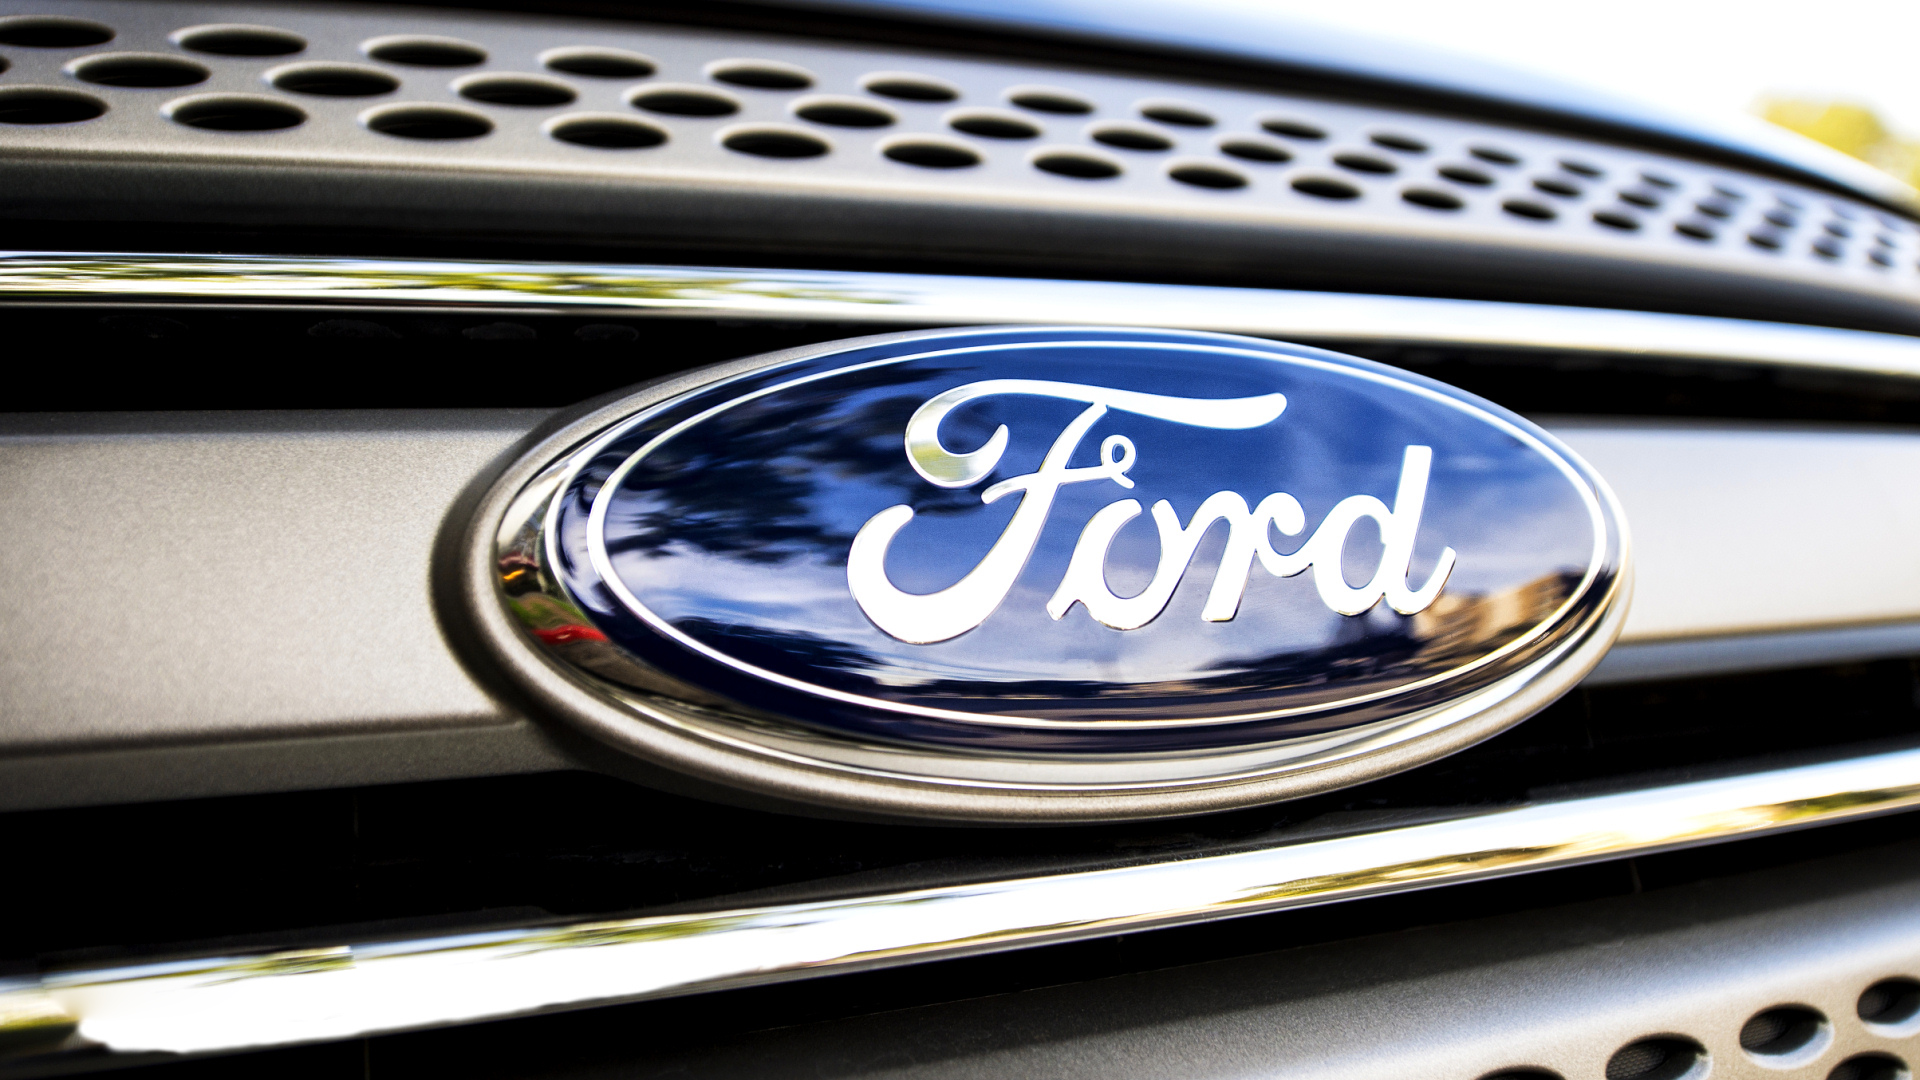 Ford Logo Wallpapers 1920x1080